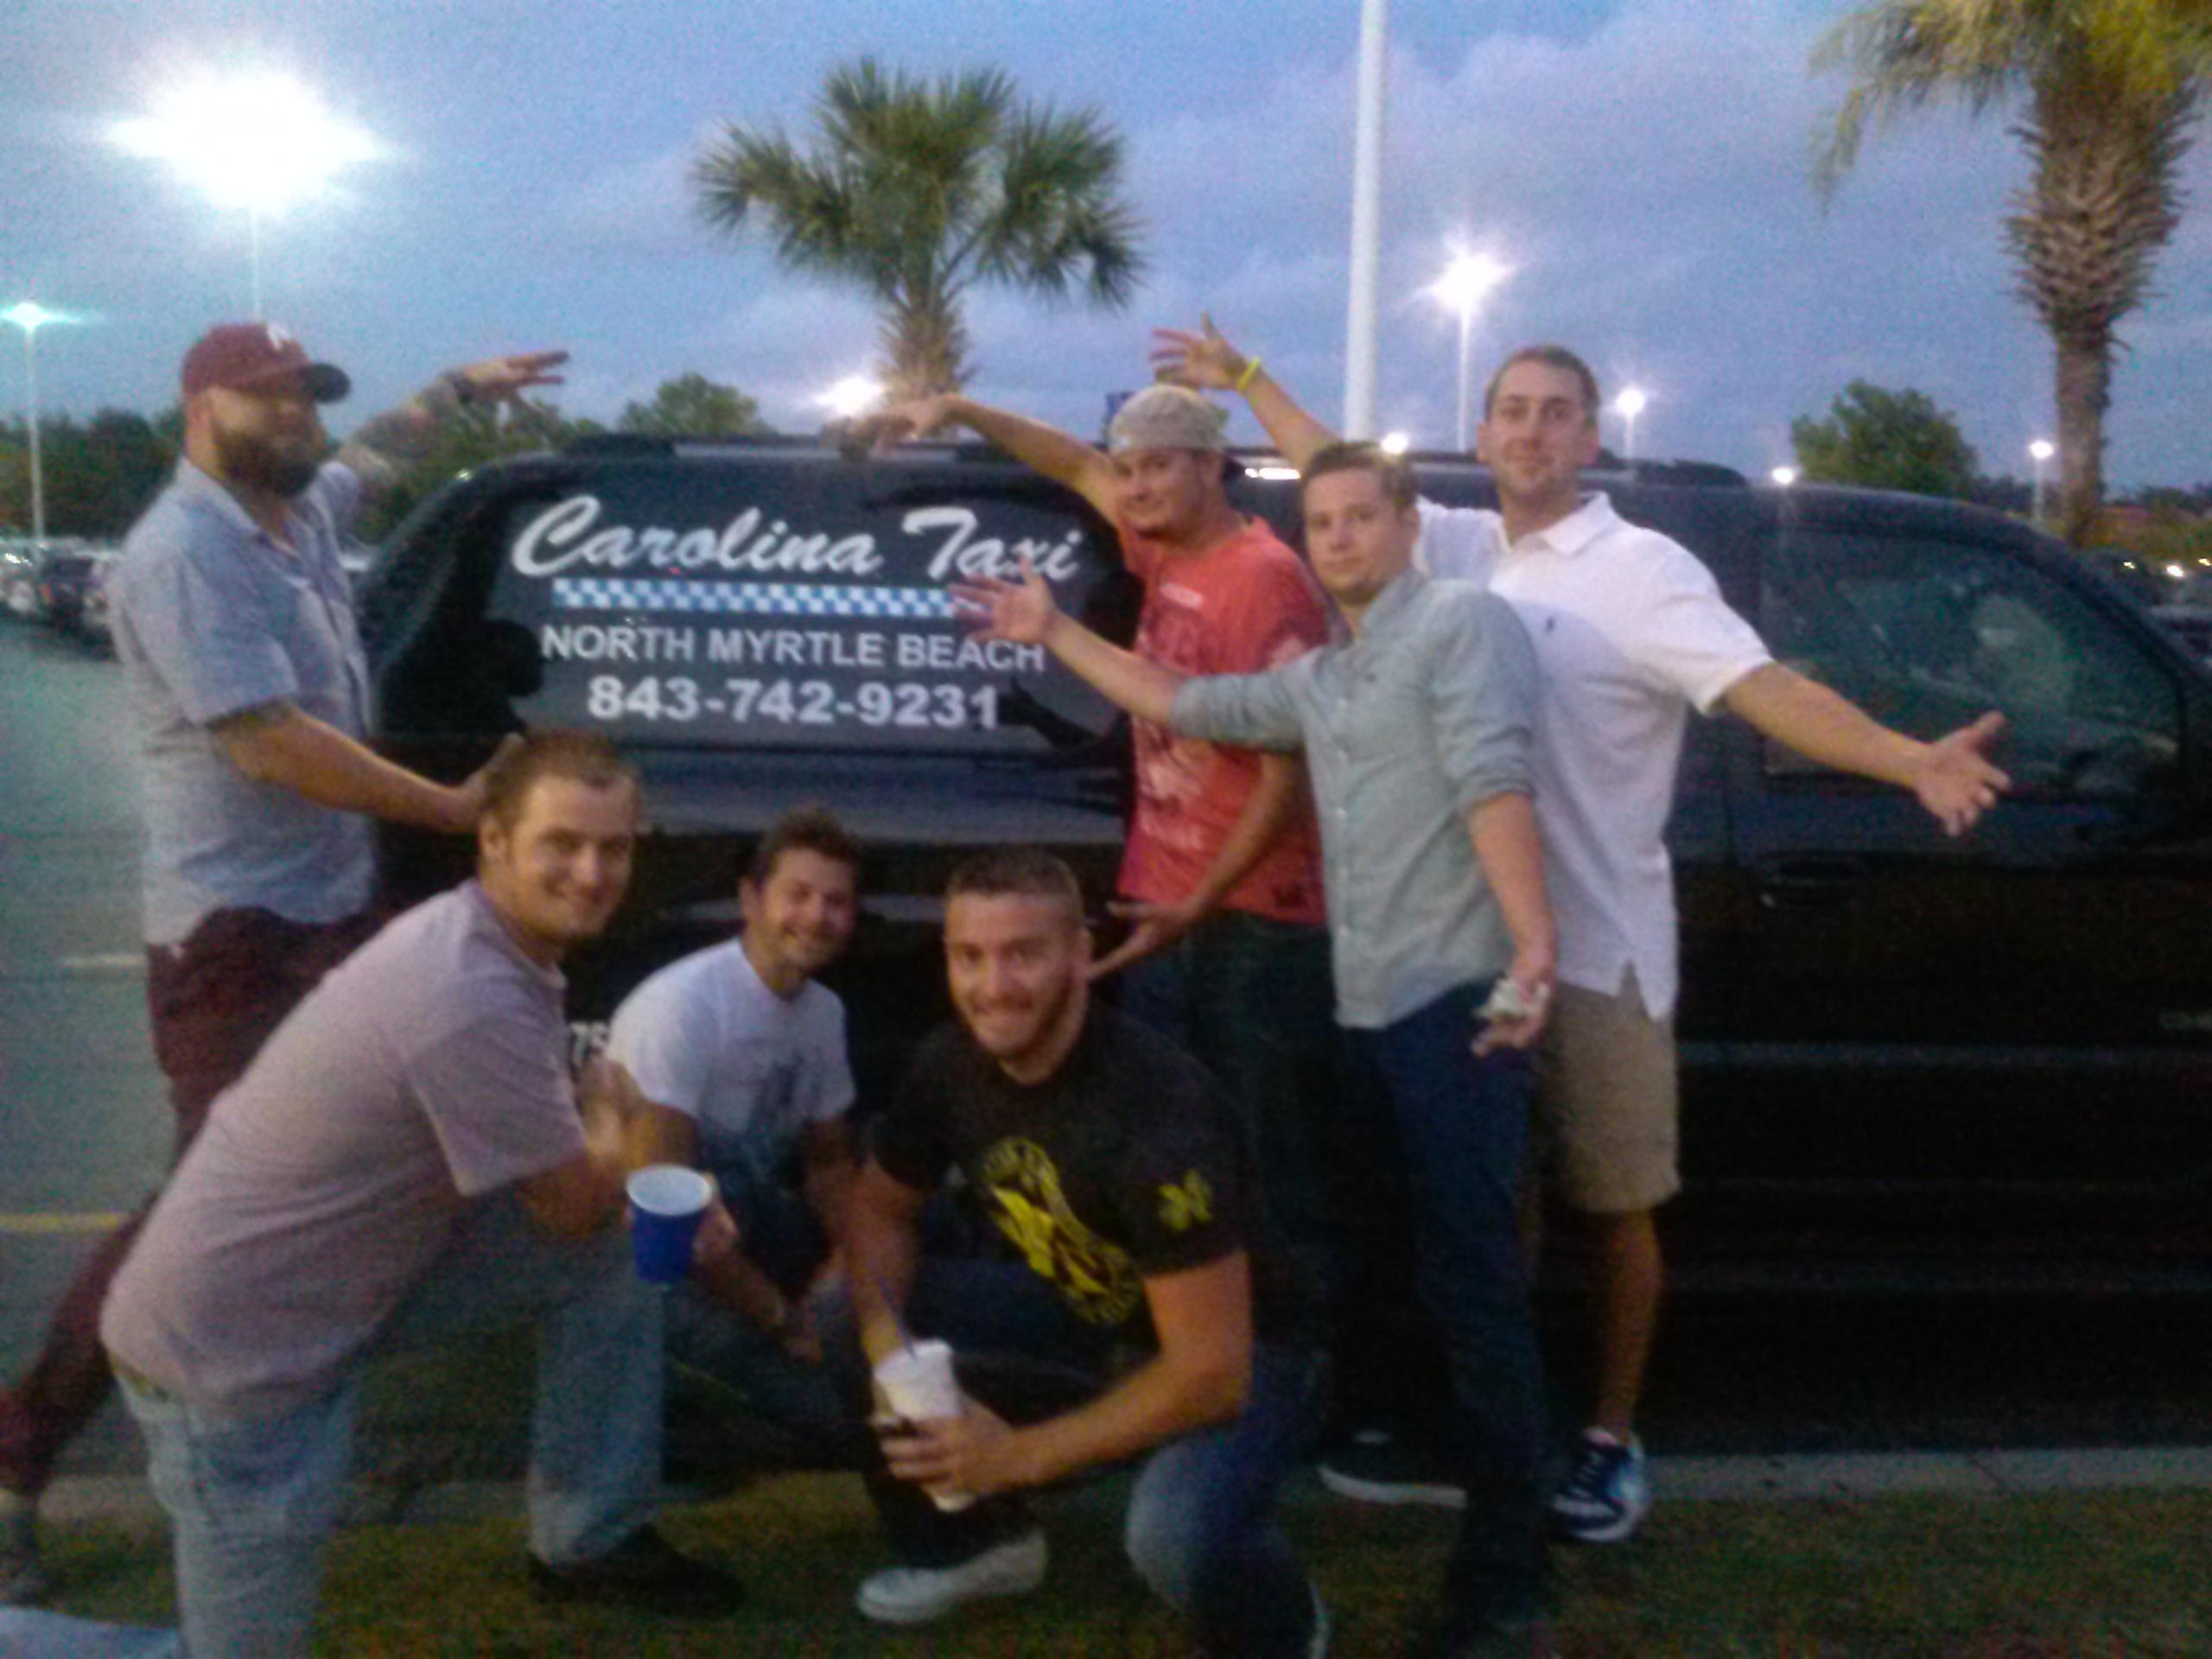 North Myrtle Beach Cab And Airport Shuttle